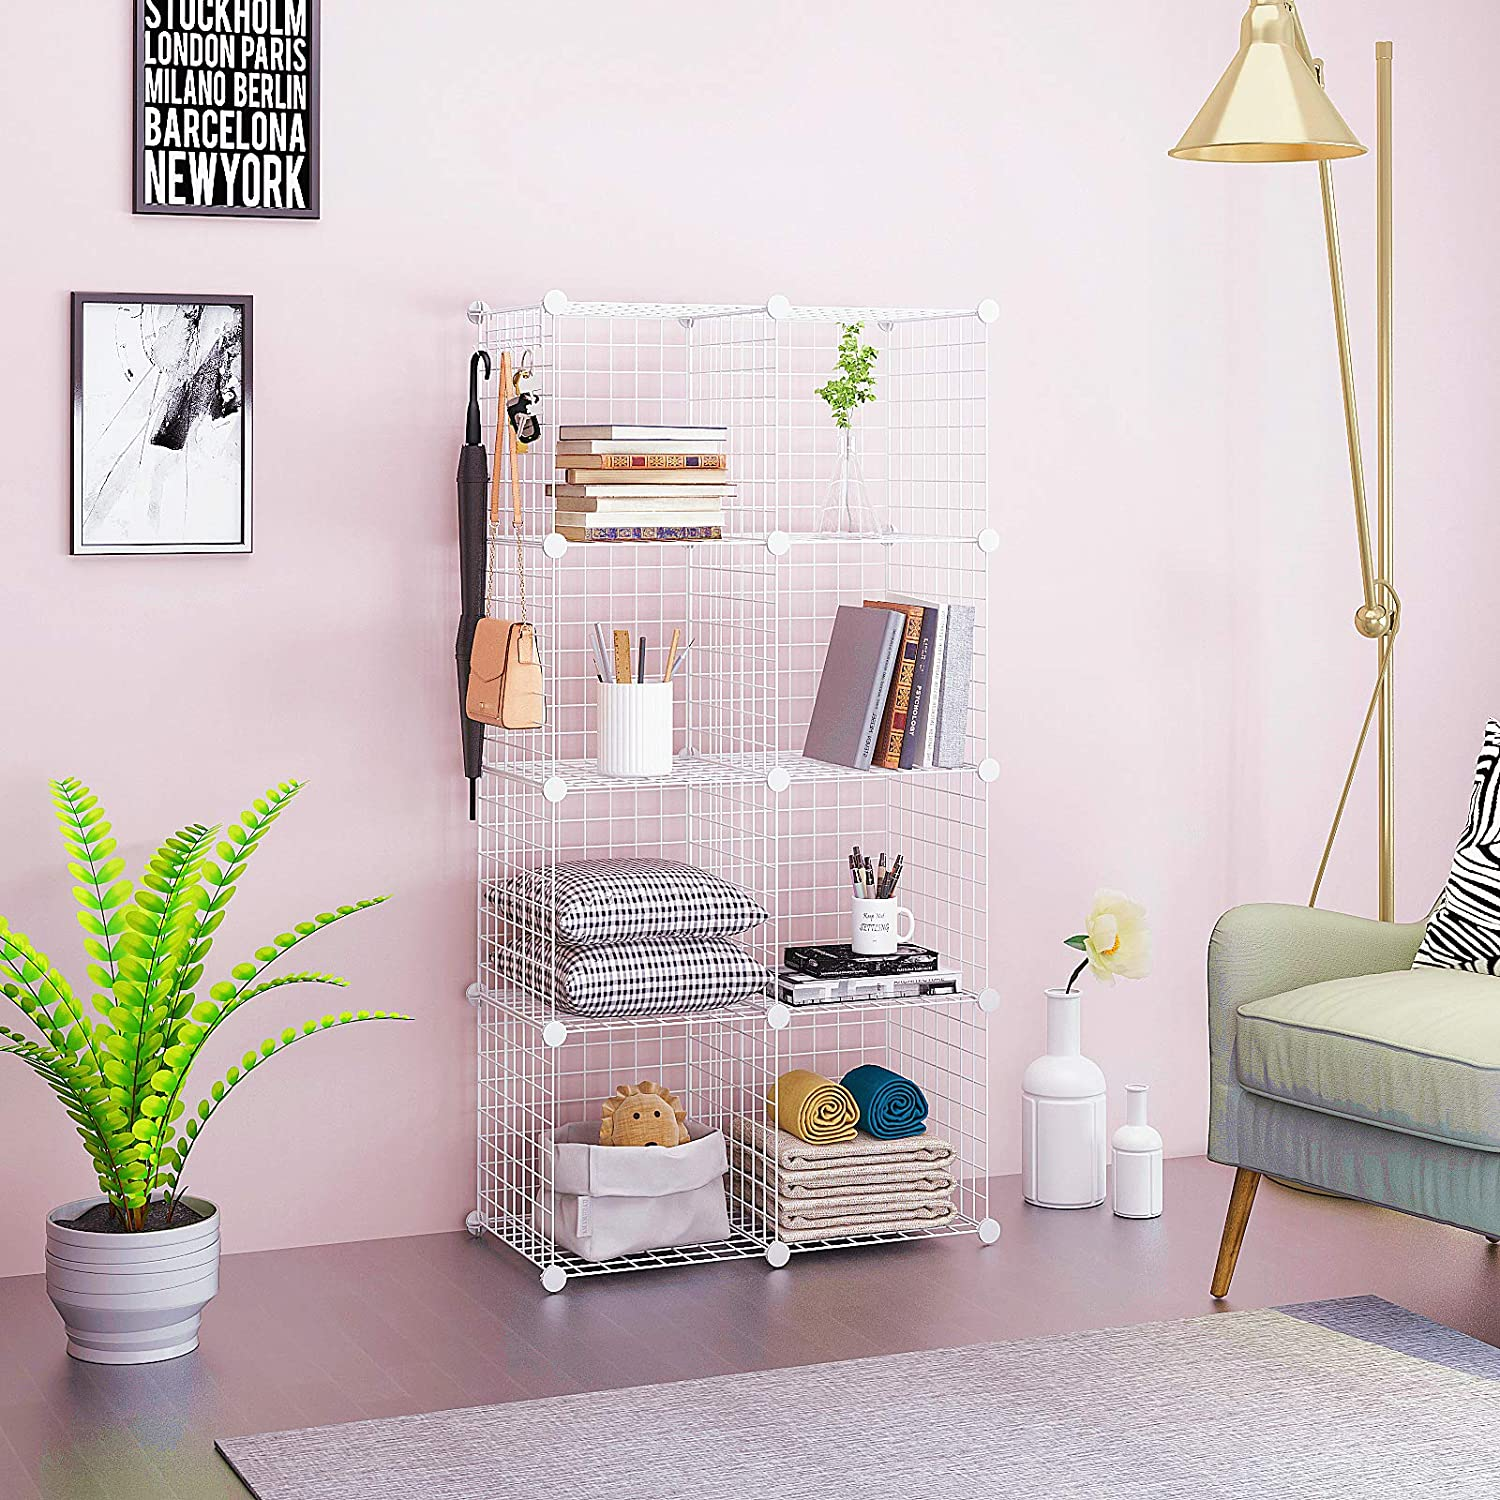 8 Cubes Closet Organizer for Home Office Kids Room 24.8 L x12.4 W x 48.4 H White Modular Shelving Units Metal Grids Book Shelf C/&AHOME Wire Storage Cubes Stackable Bookcase